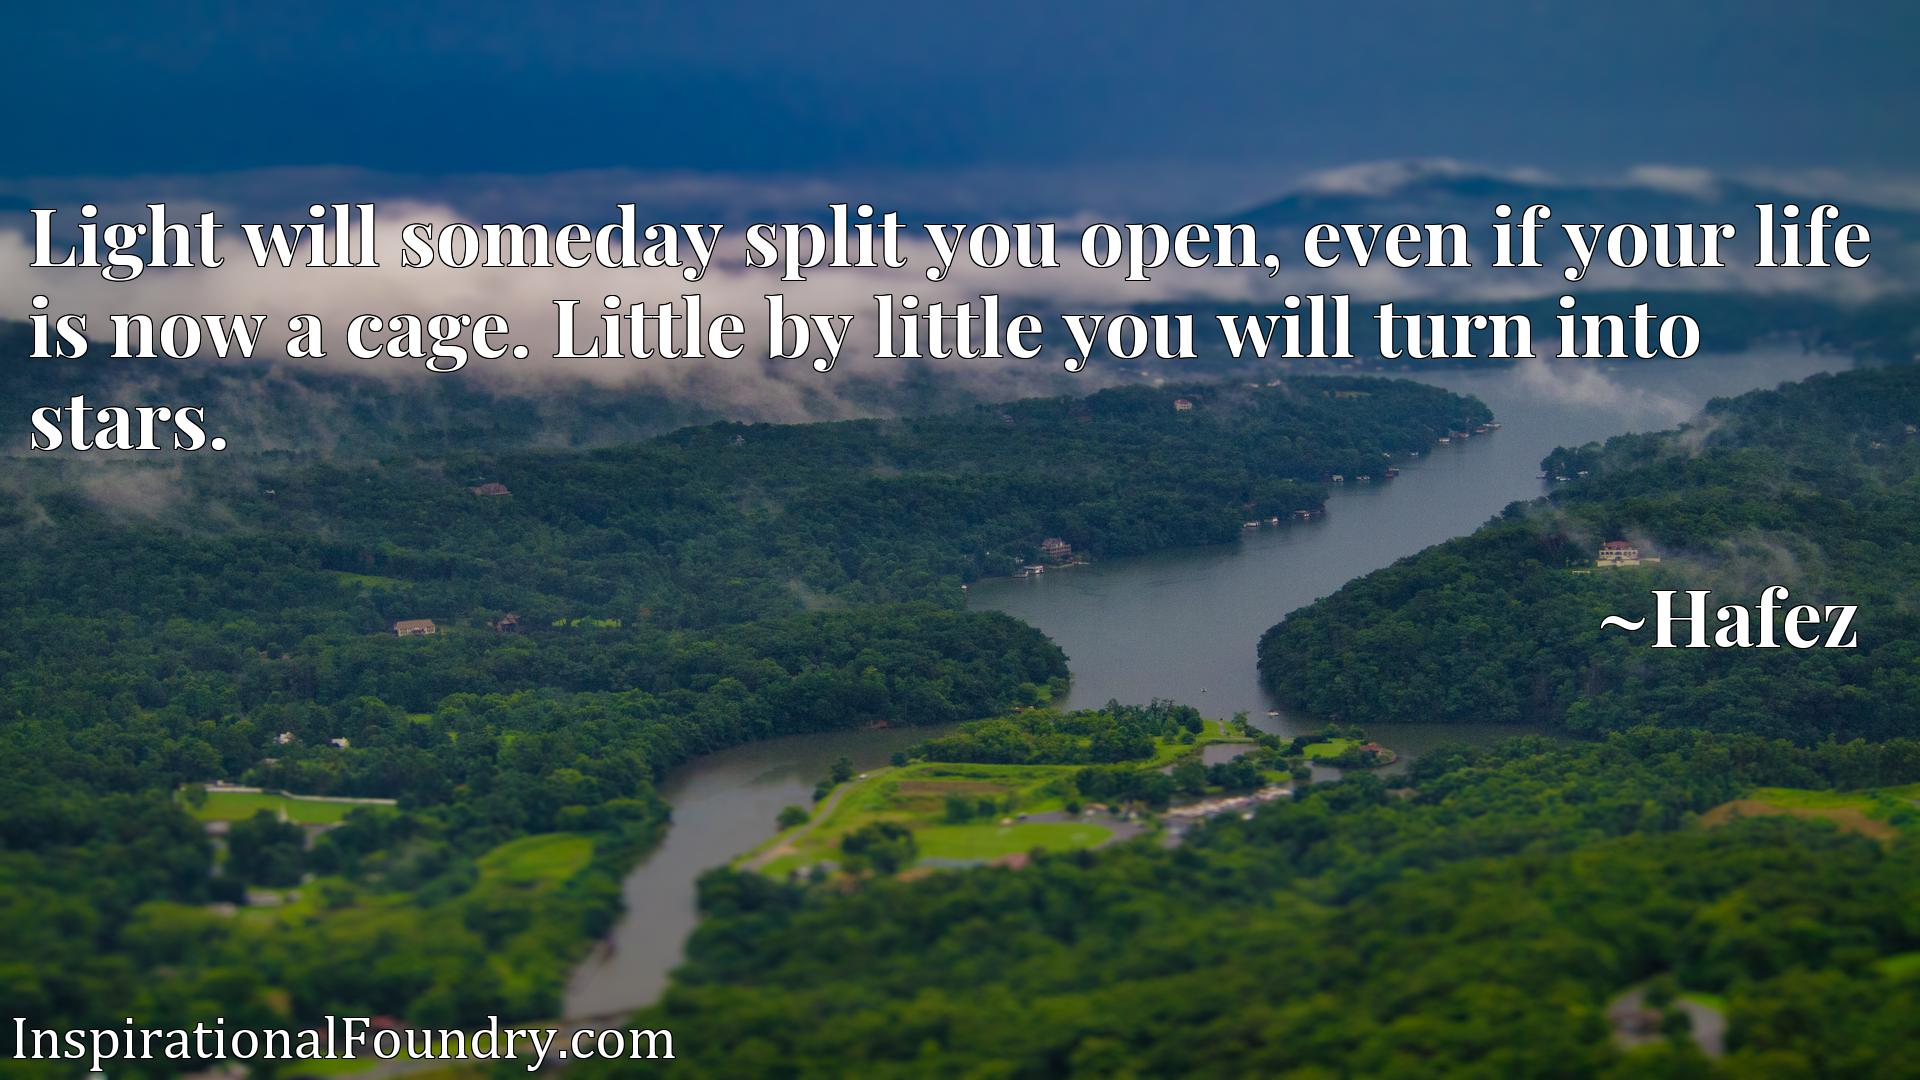 Light will someday split you open, even if your life is now a cage. Little by little you will turn into stars.